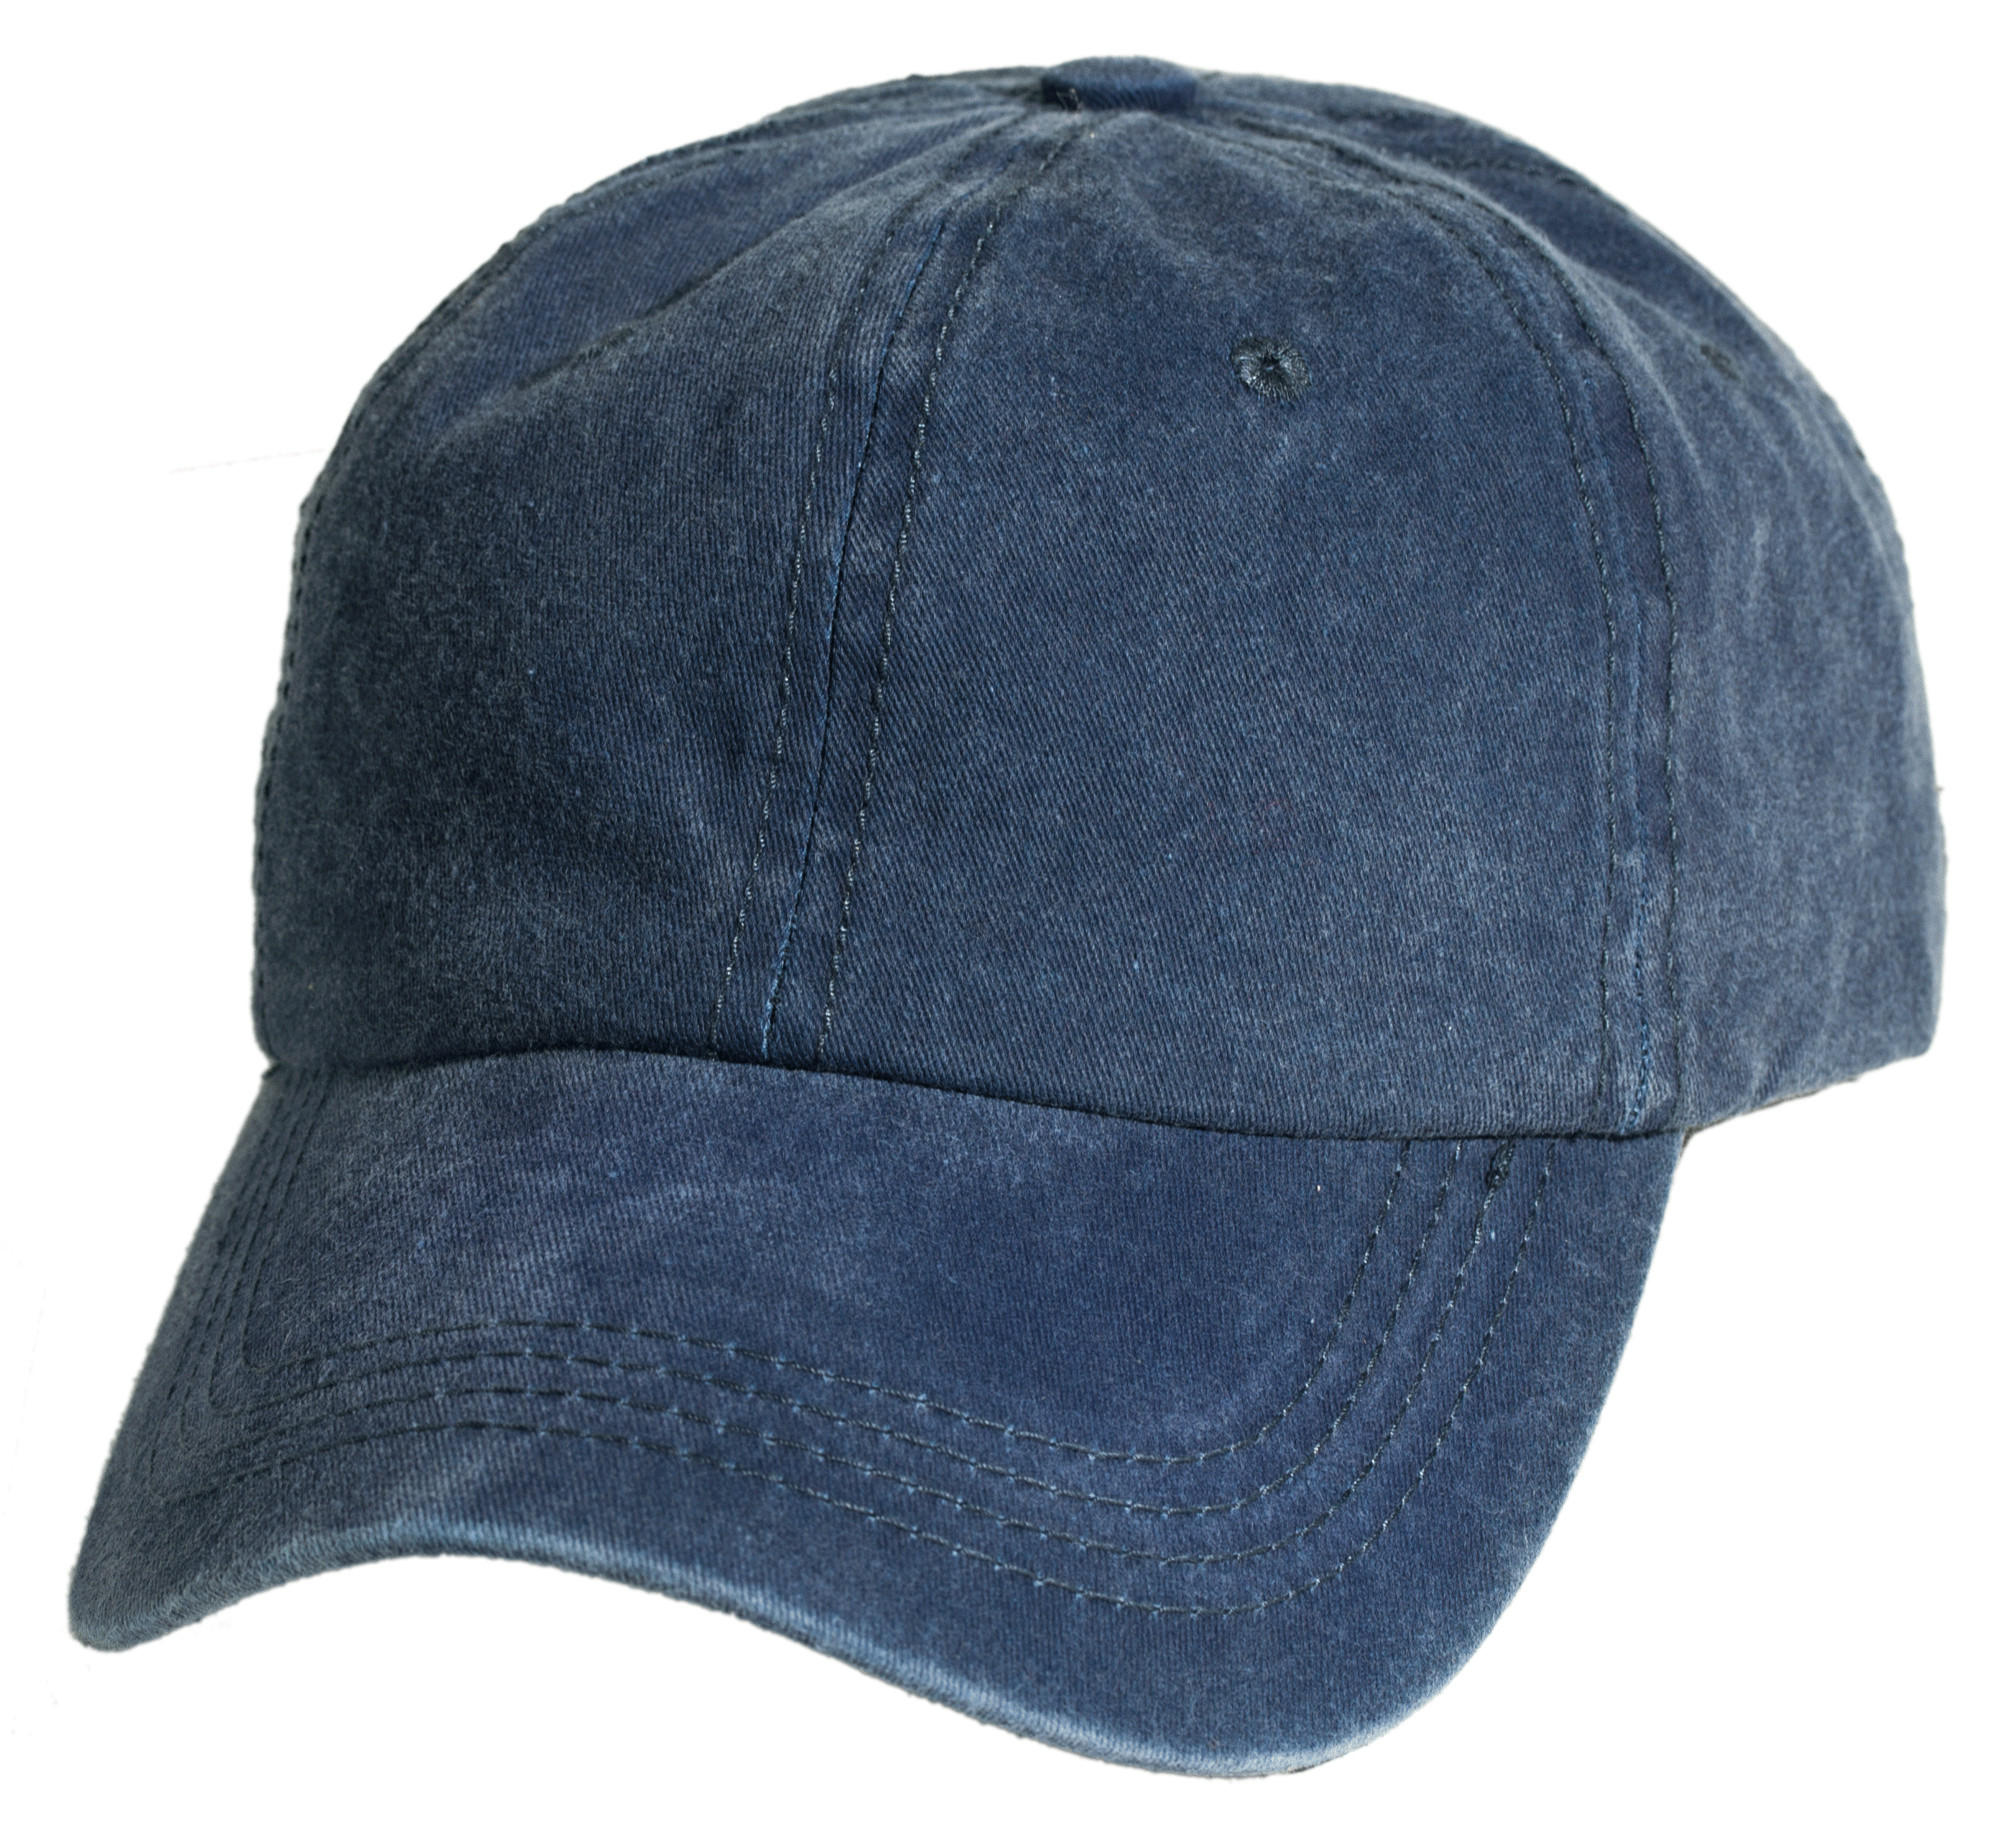 Washed Cotton Baseball Cap by Levine Hat from Levine Hat Co. 65299180a10